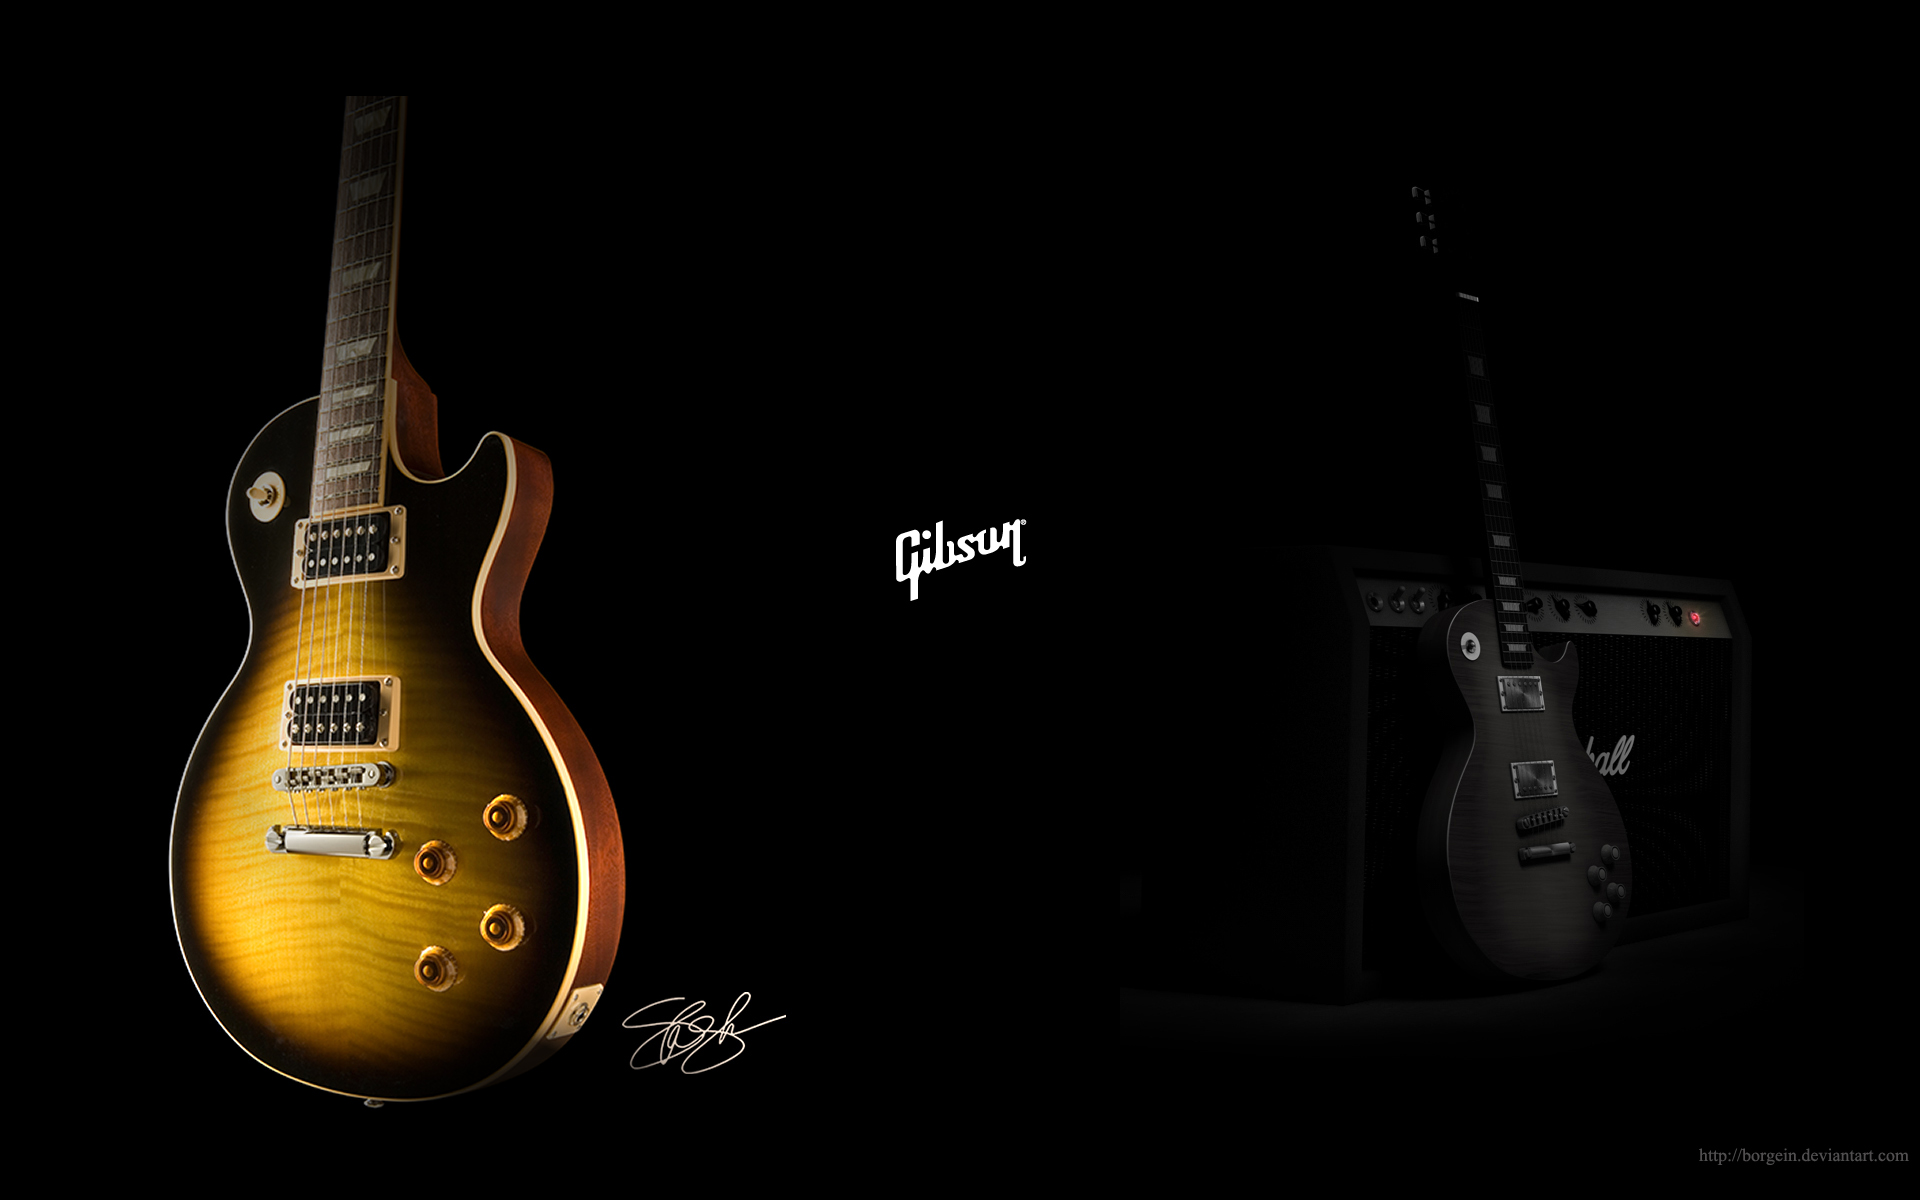 Gibson Guitar Wallpaper 1366 X 768 » gibson guitar wallpaper 1366 X 768